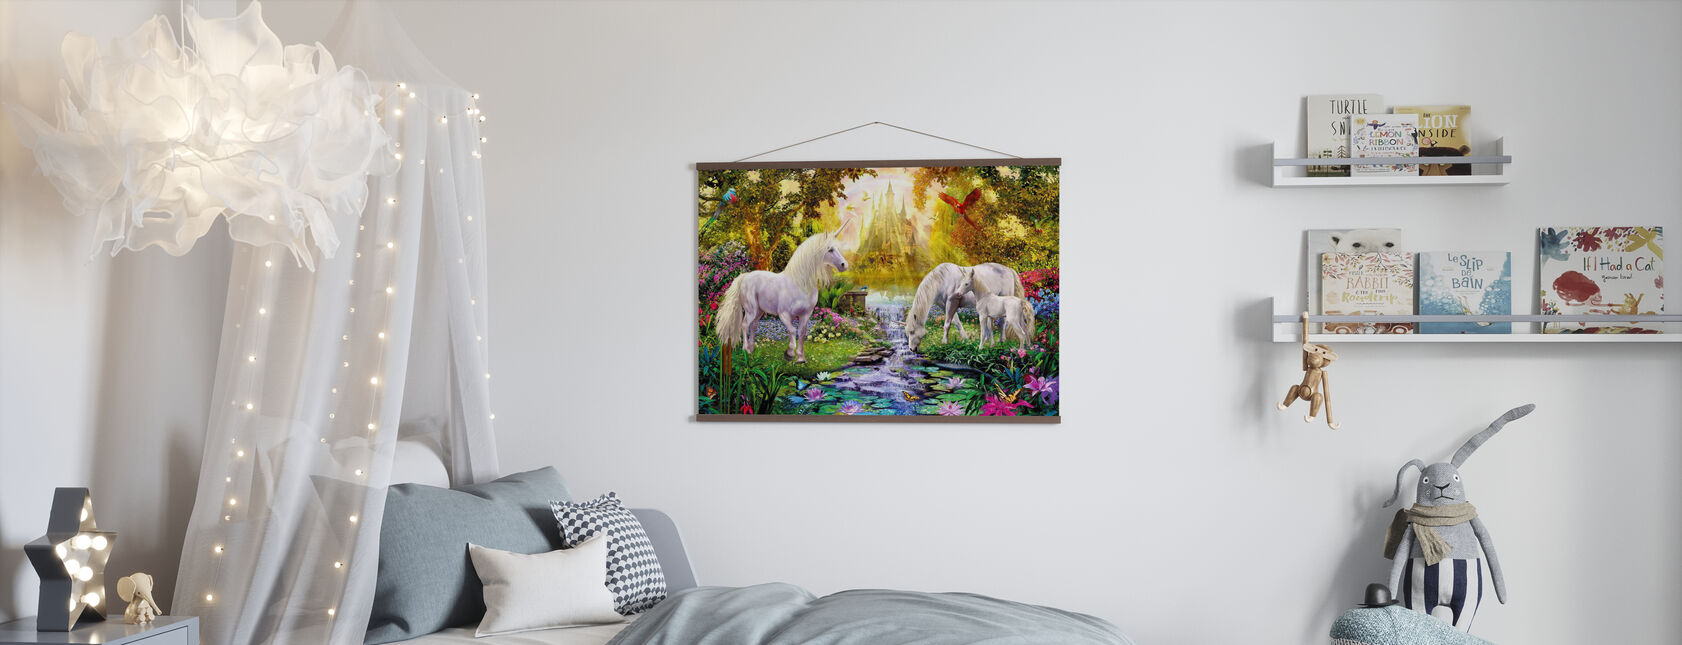 The Castle Unicorn Garden - Poster - Kids Room